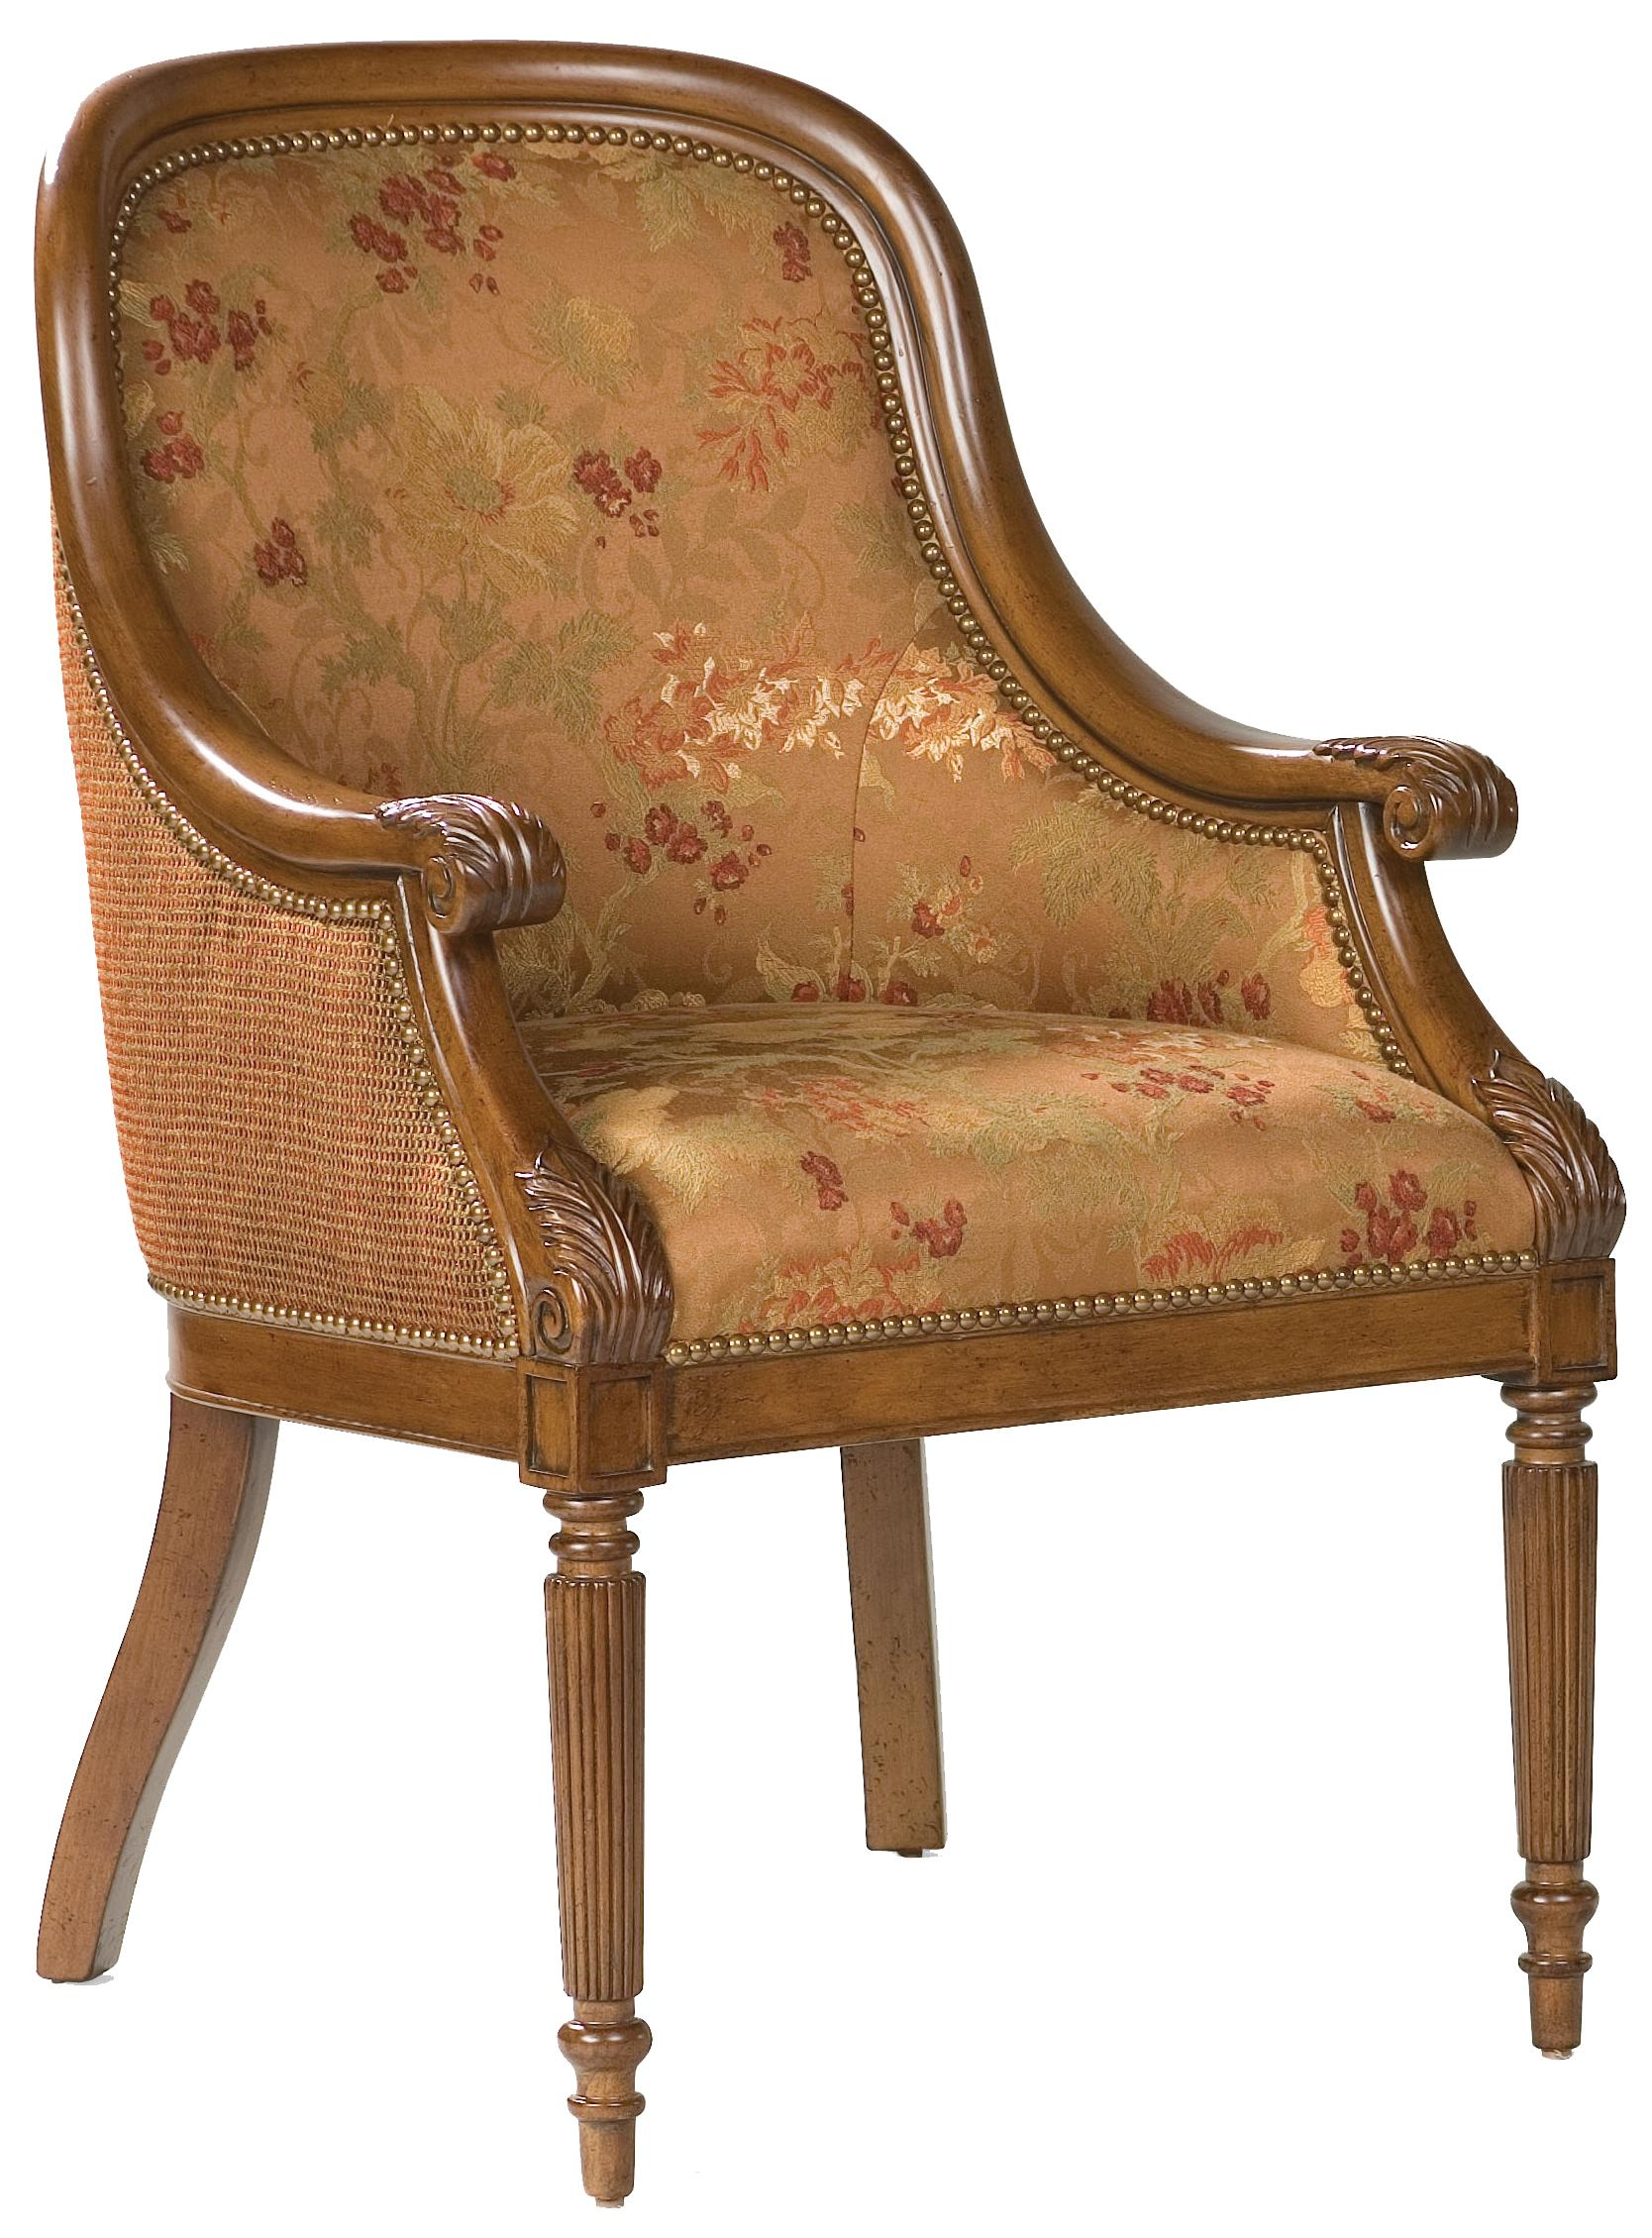 Fairfield Chairs Exposed Wood Lounge Chair - Item Number: 5476-04